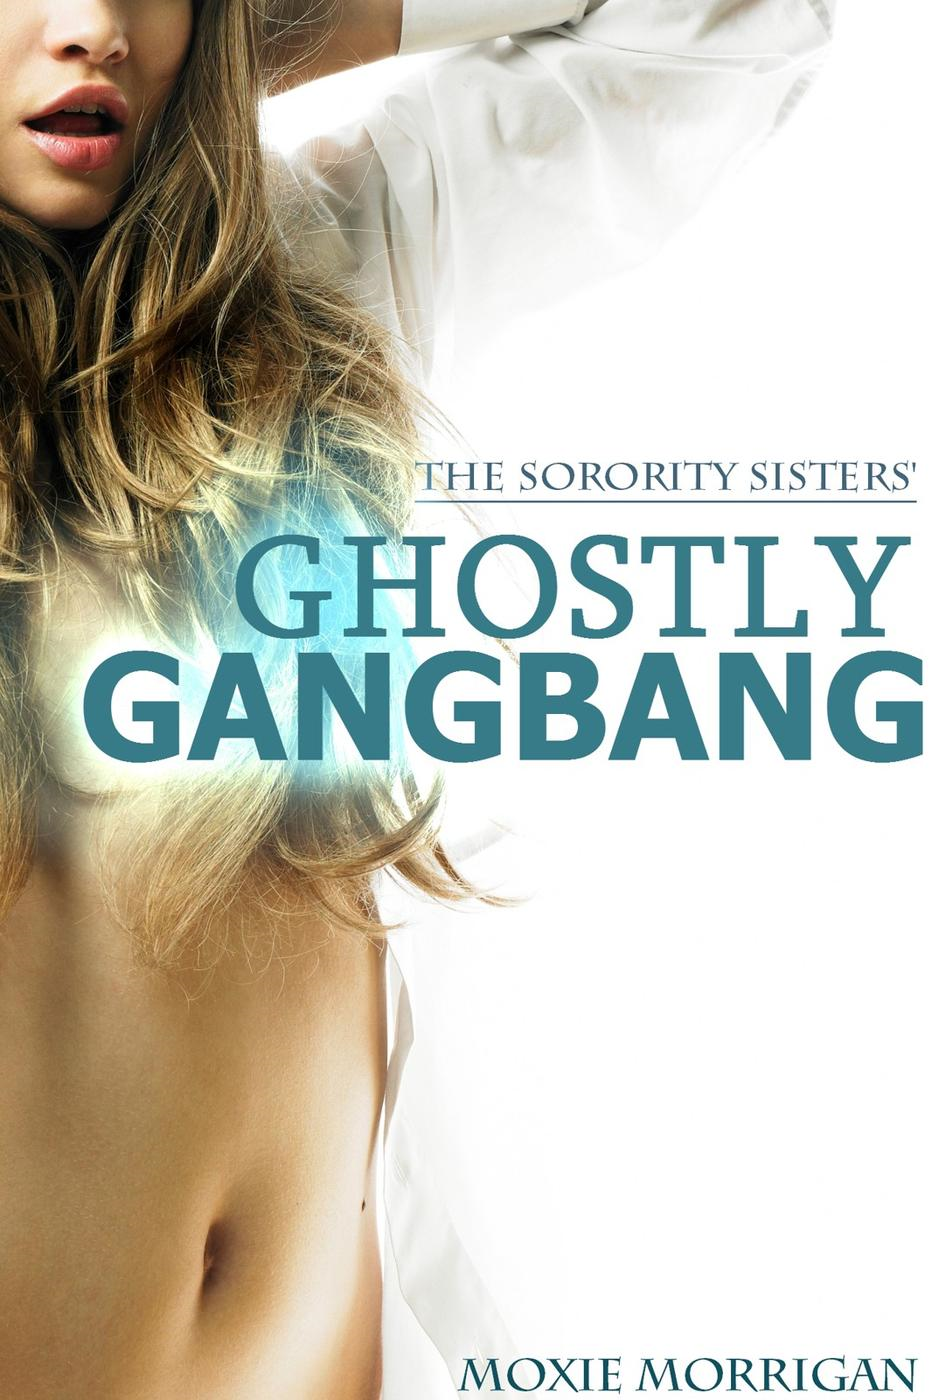 The Sorority Sisters' Ghostly Gangbang